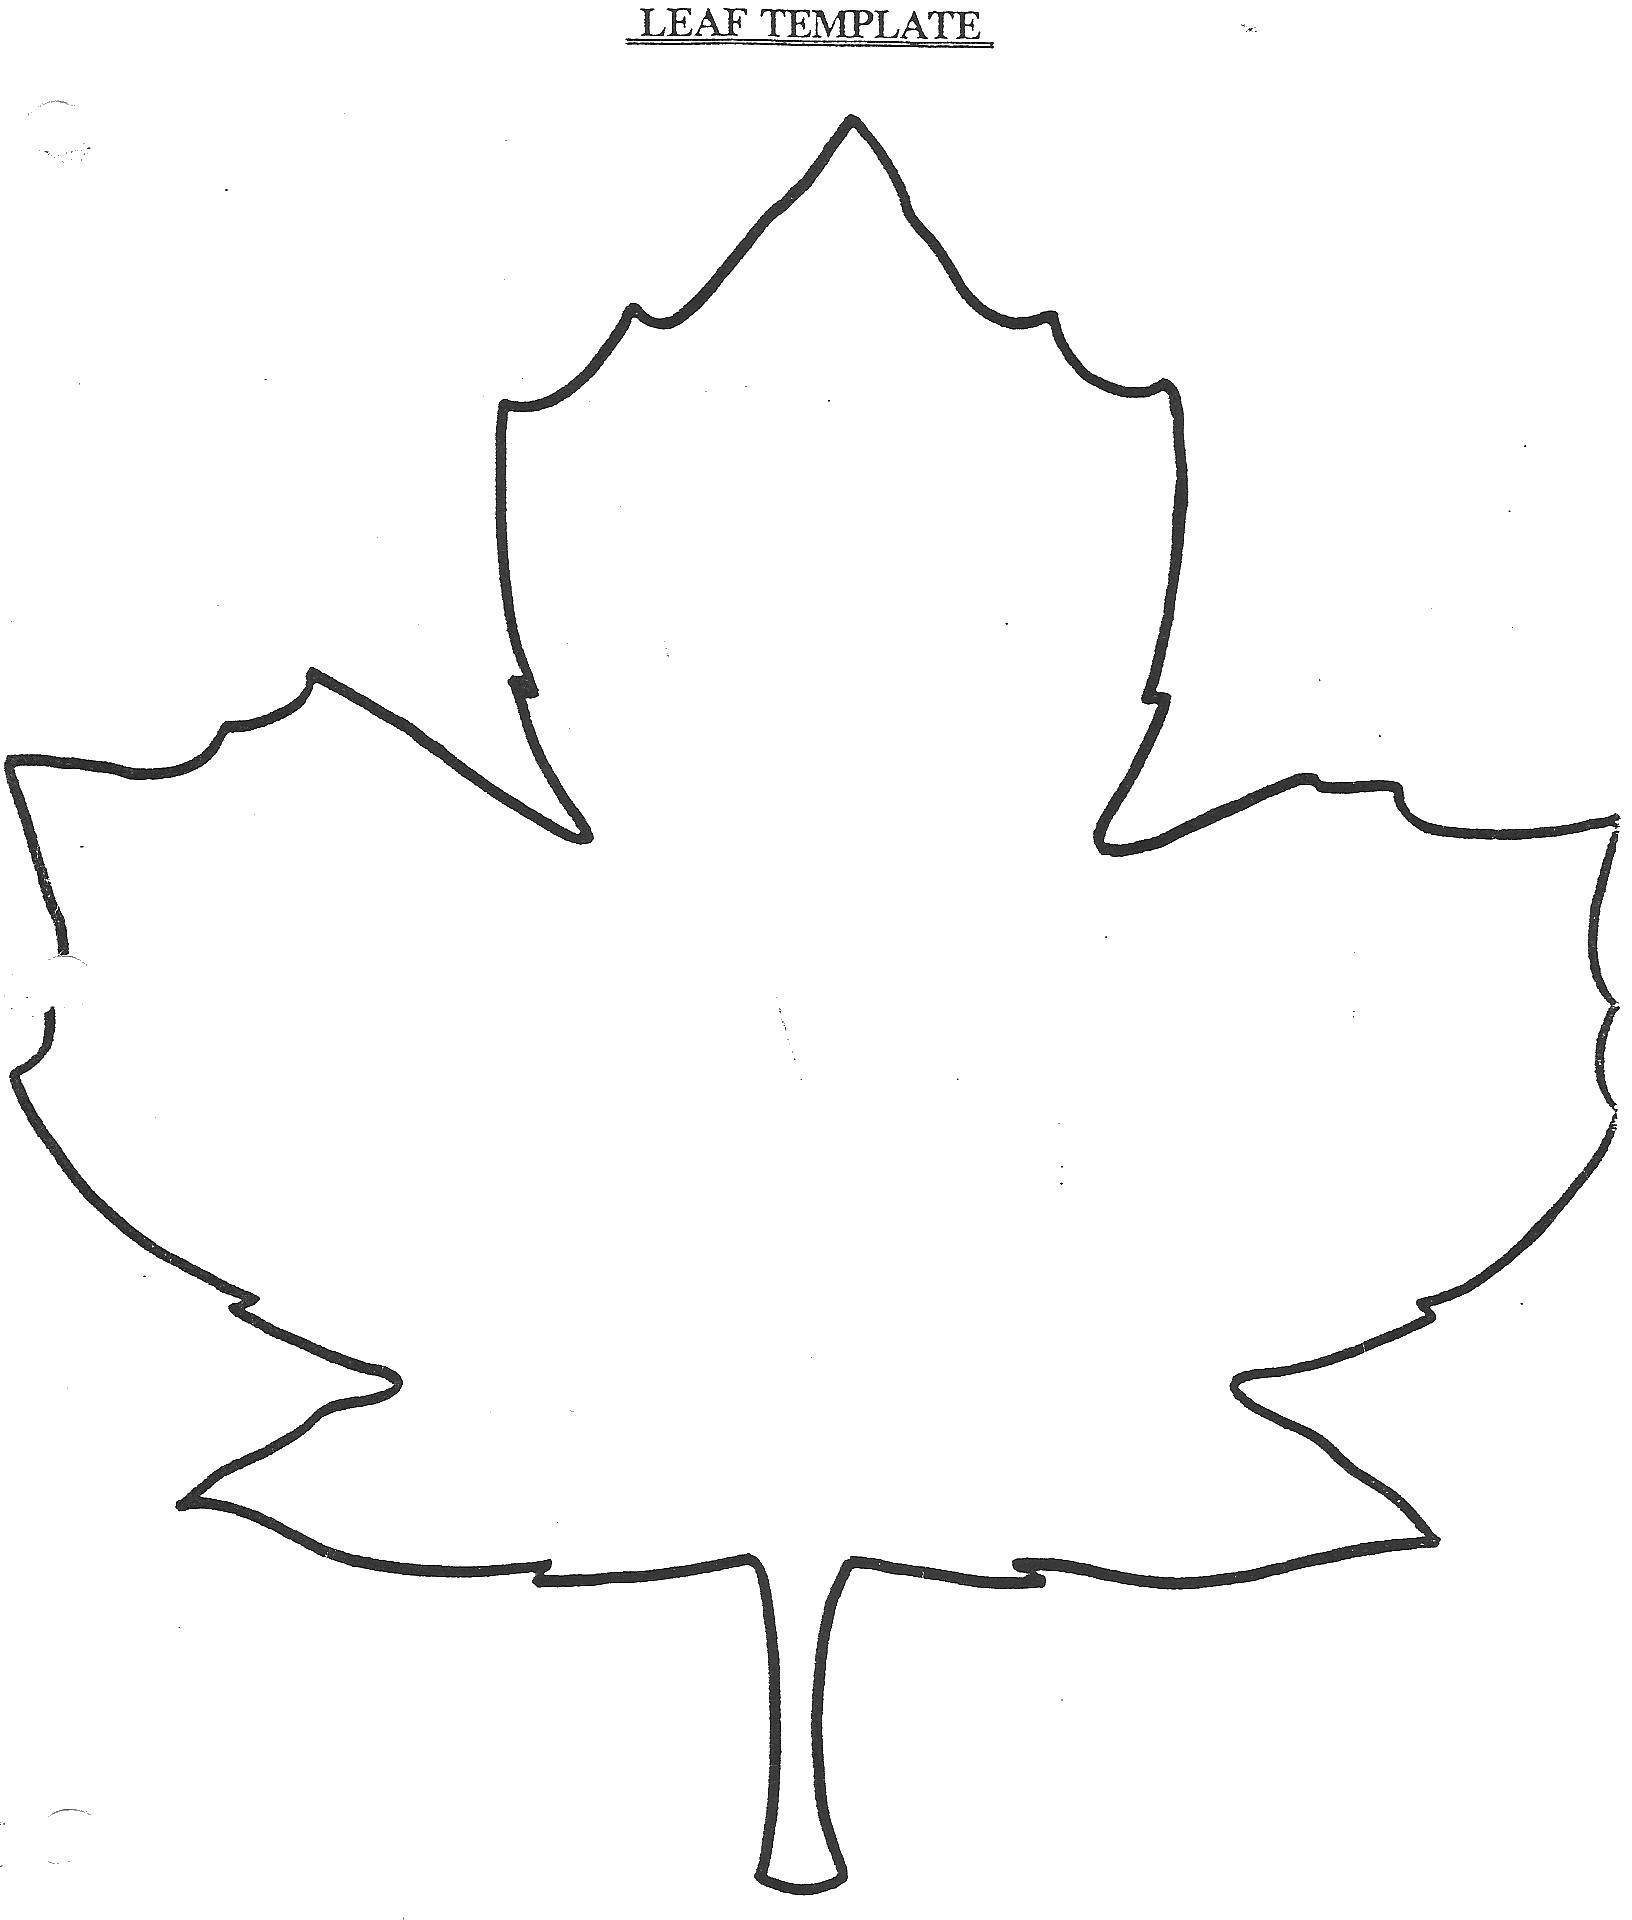 Coloring Sheet Download the outline of the leaf, leaves.  Print ,The contours of the leaves of the trees,